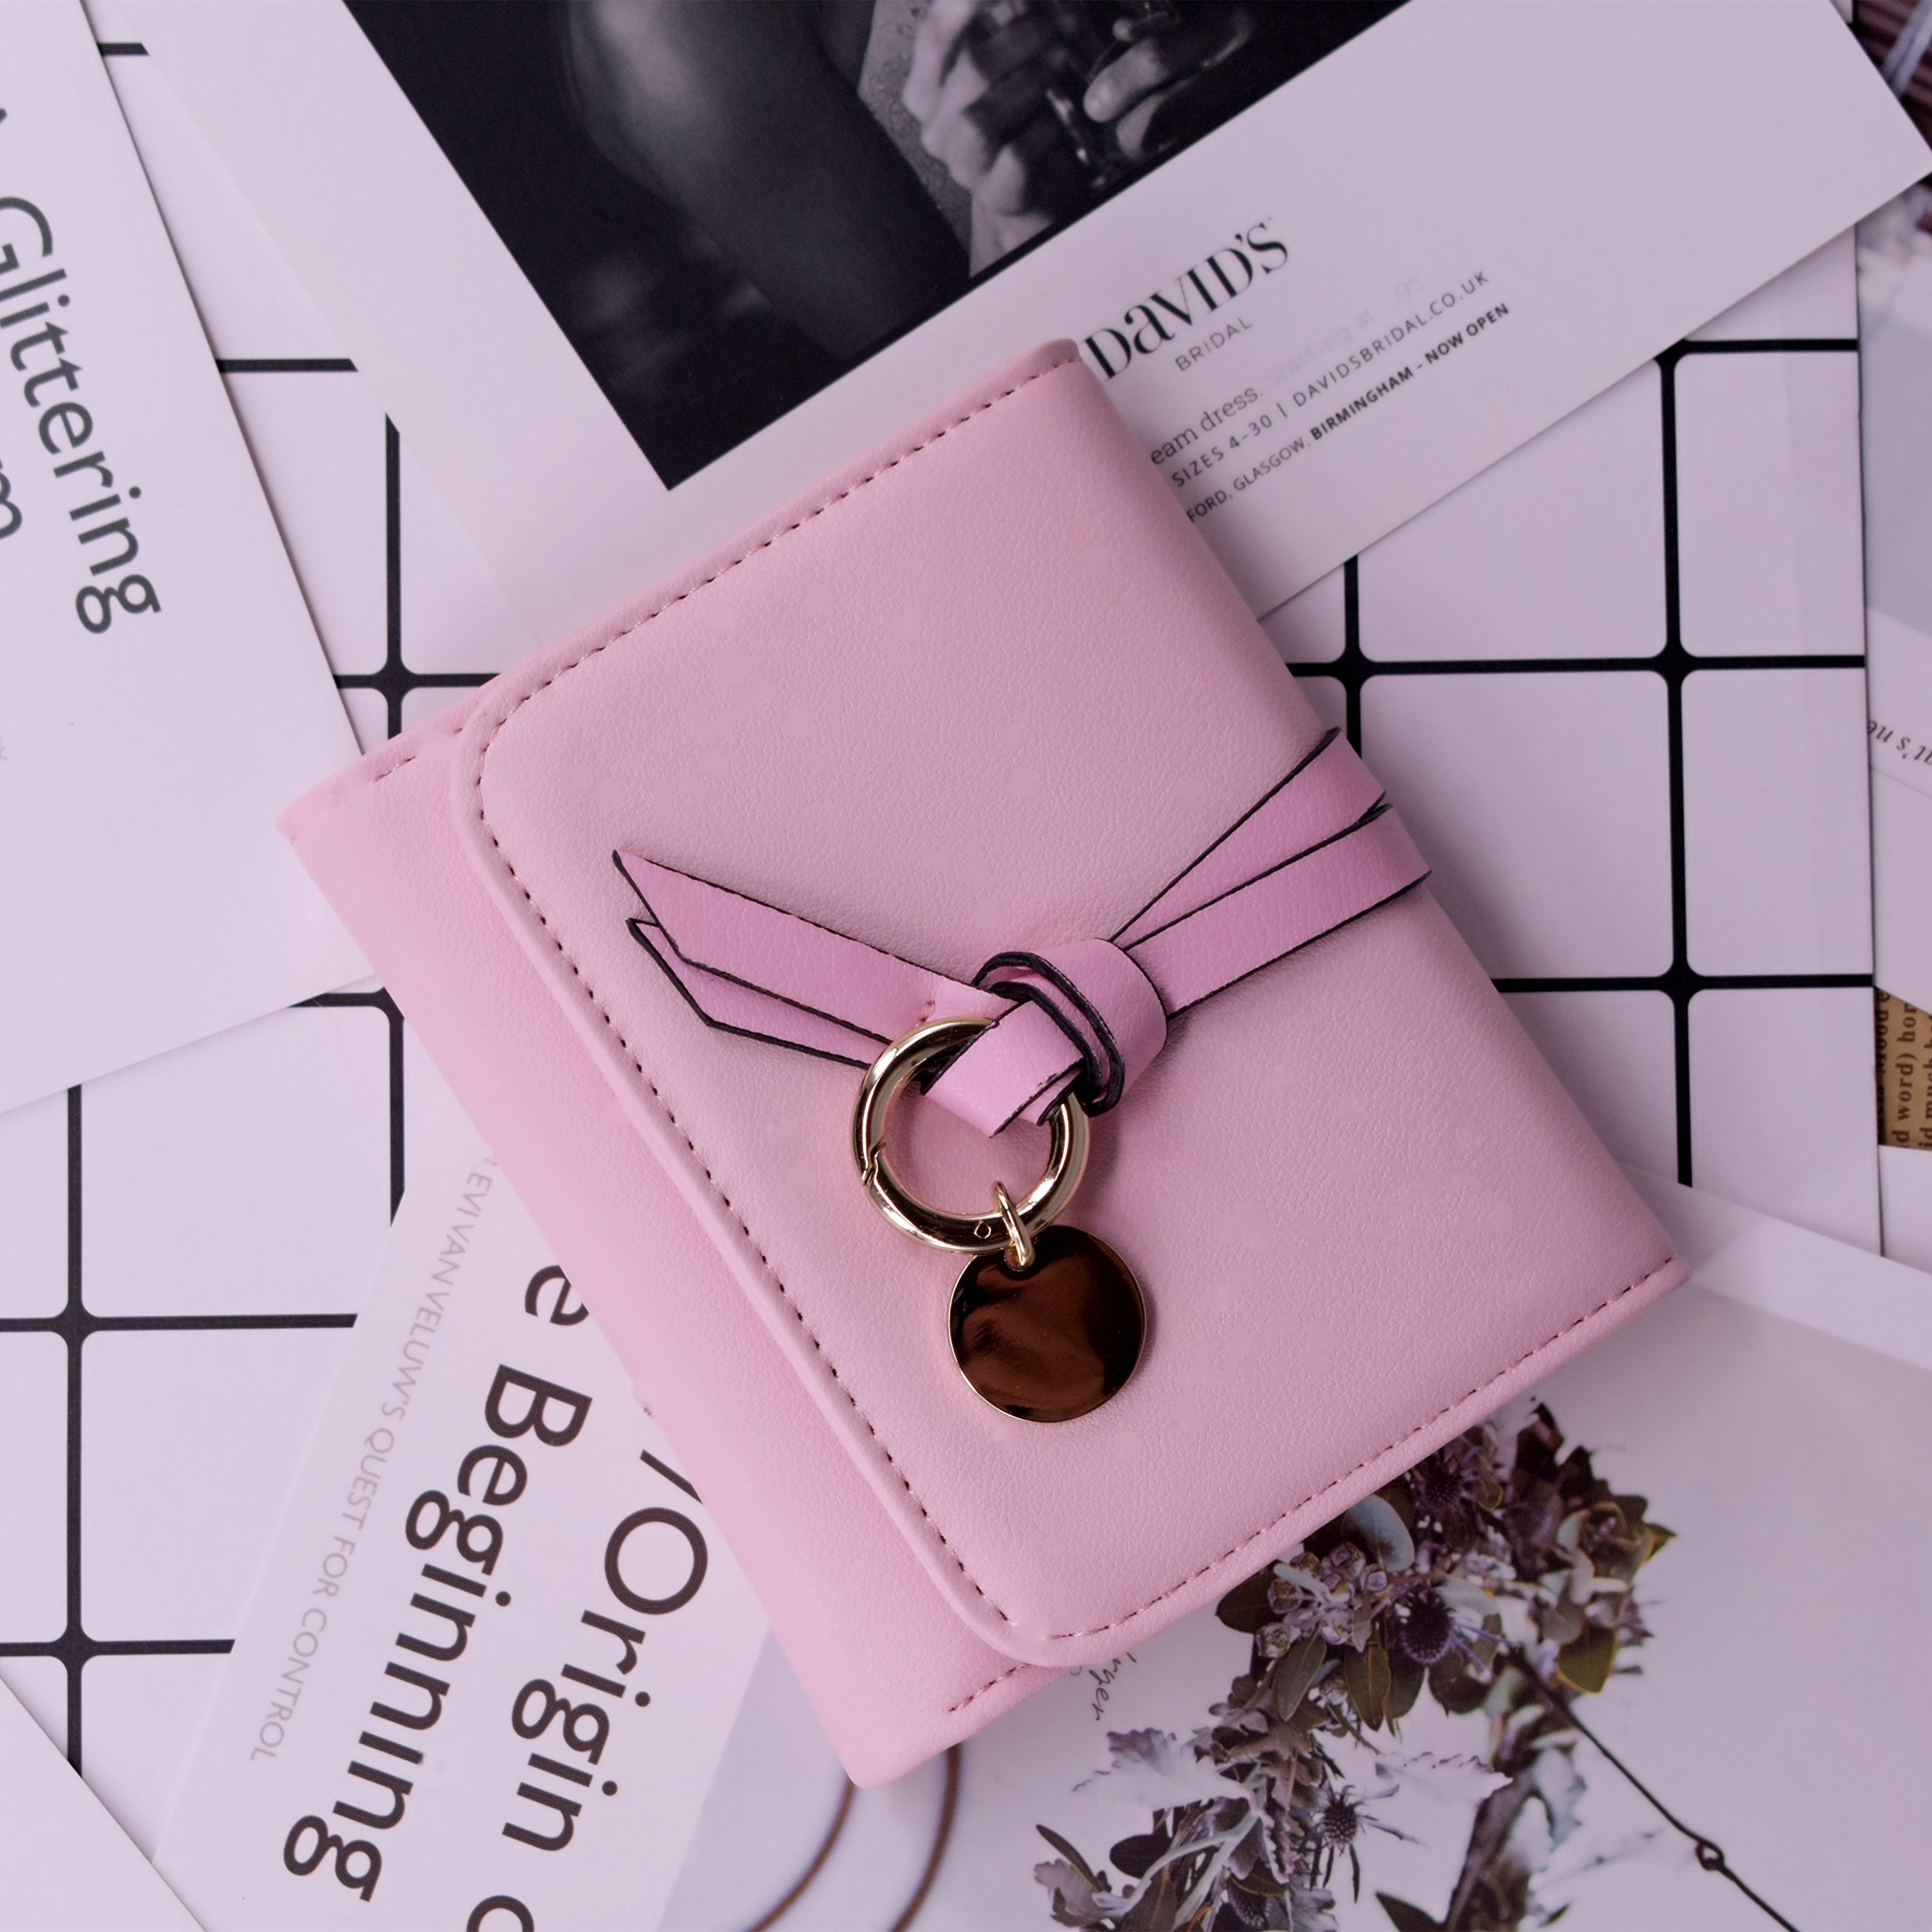 ABC STORY Womens Cute Pink Purse Card Holder Small Trifold Wallets For Teen Girls by ABC STORY (Image #4)